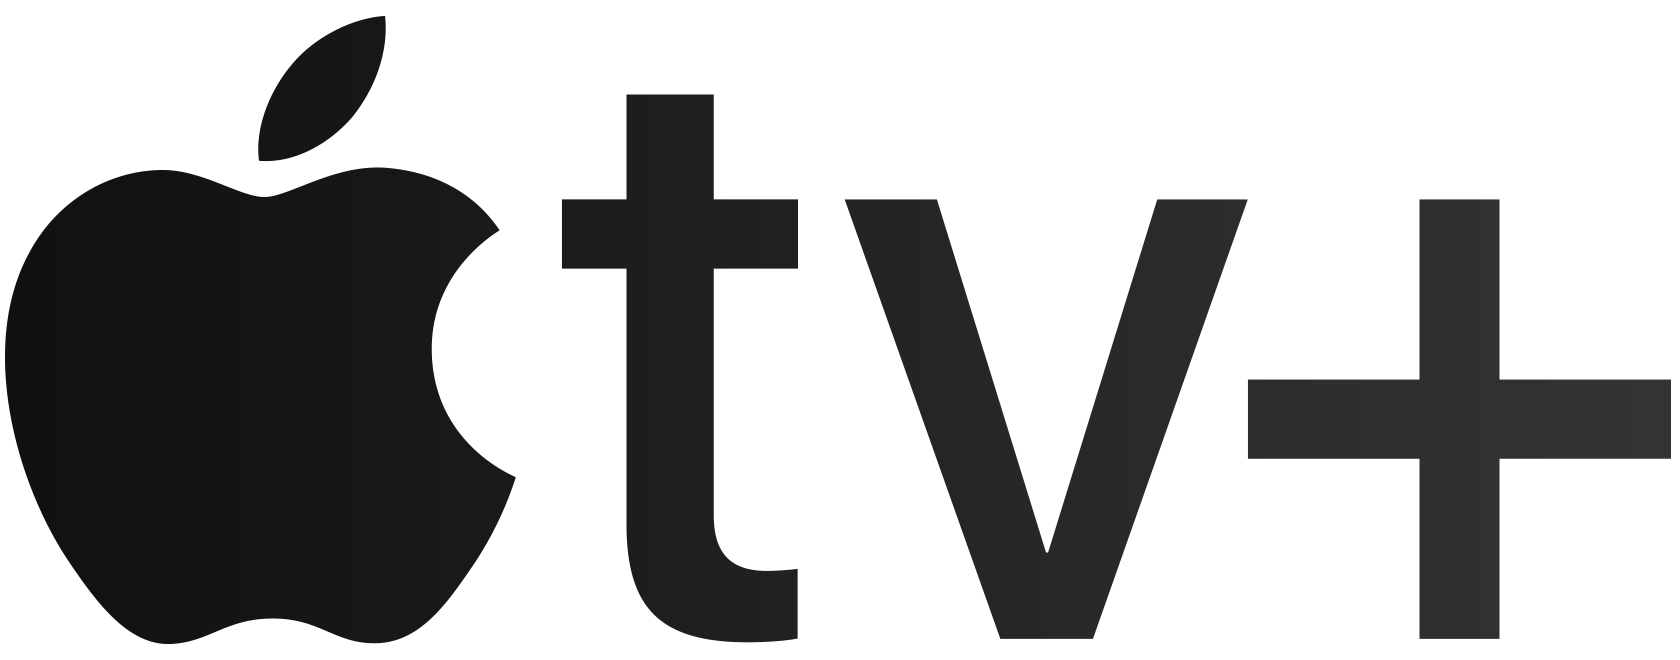 File:Apple TV+ logo.png.